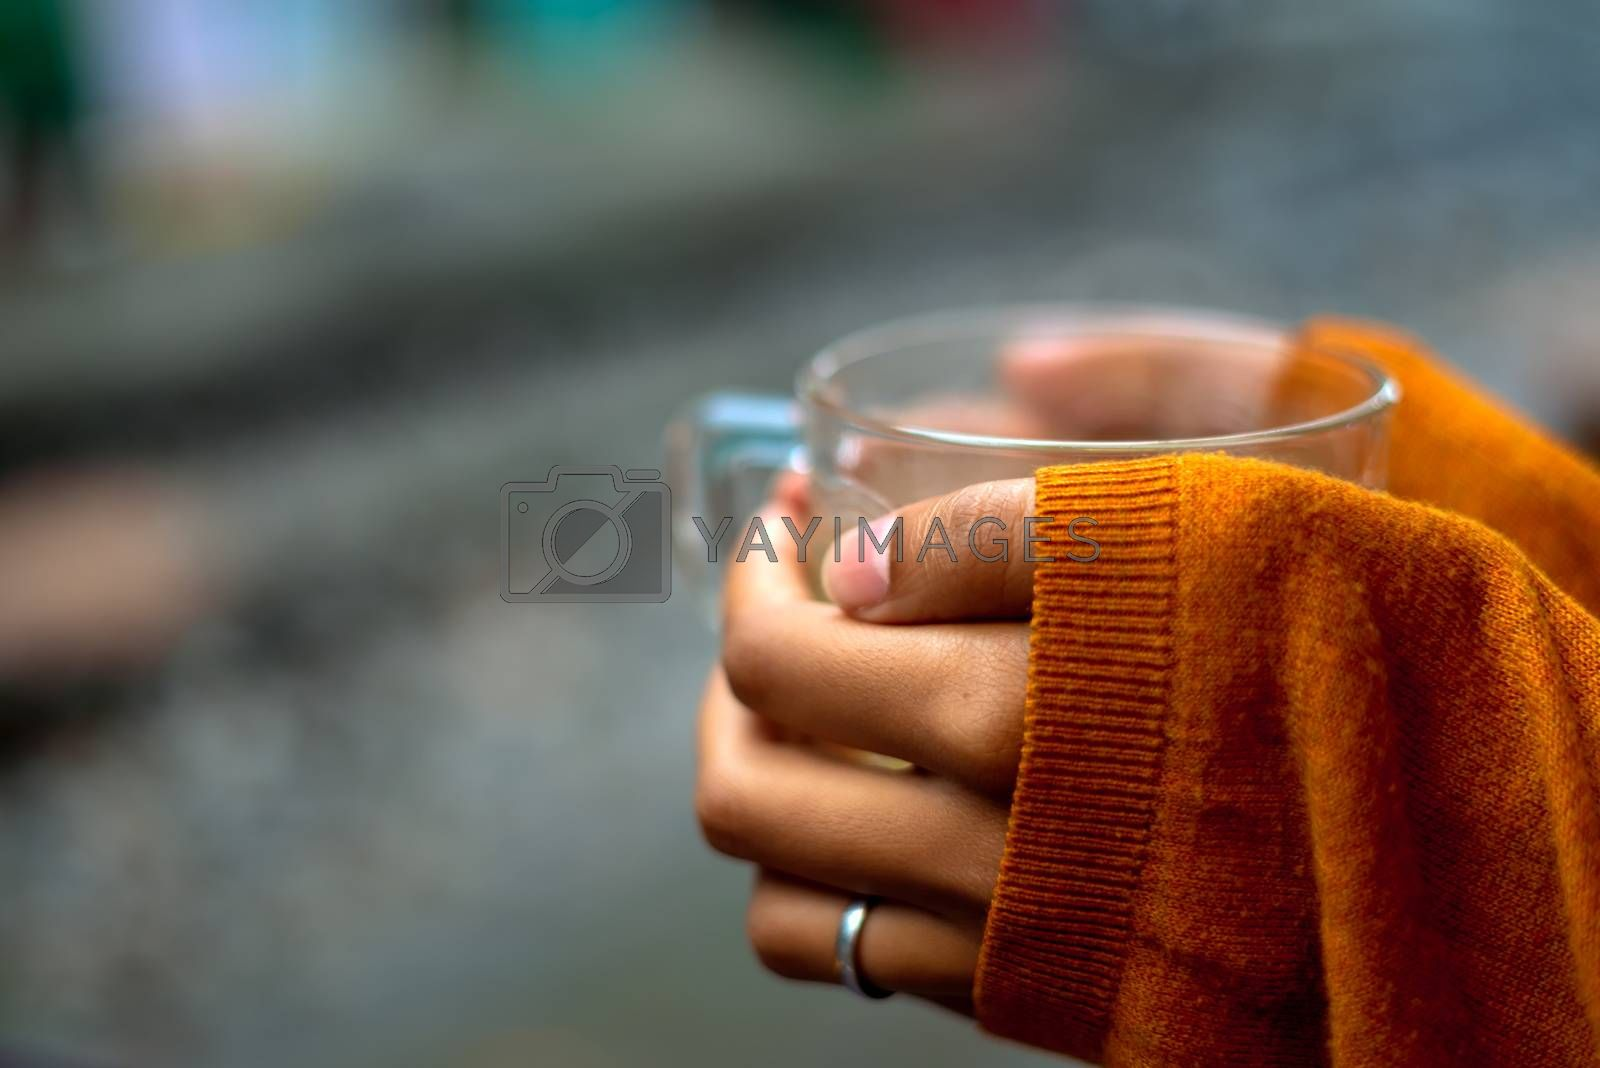 holding a cup of tea by rails waiting for the train with orange pullover covering hands by half